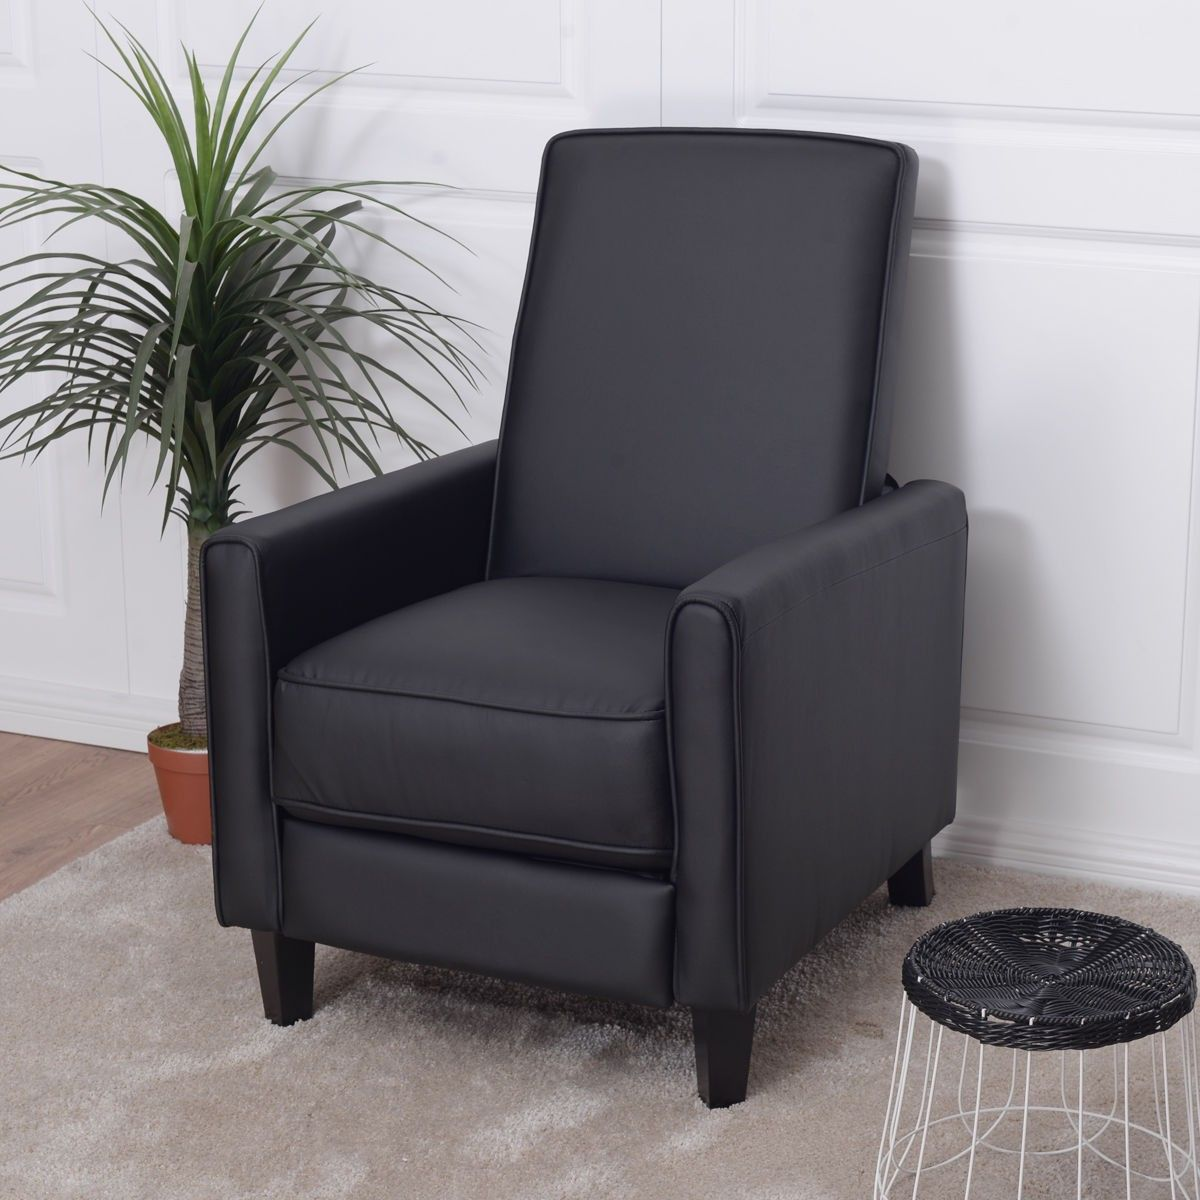 Single Recliner PU Leather Sofa with Foot Extension